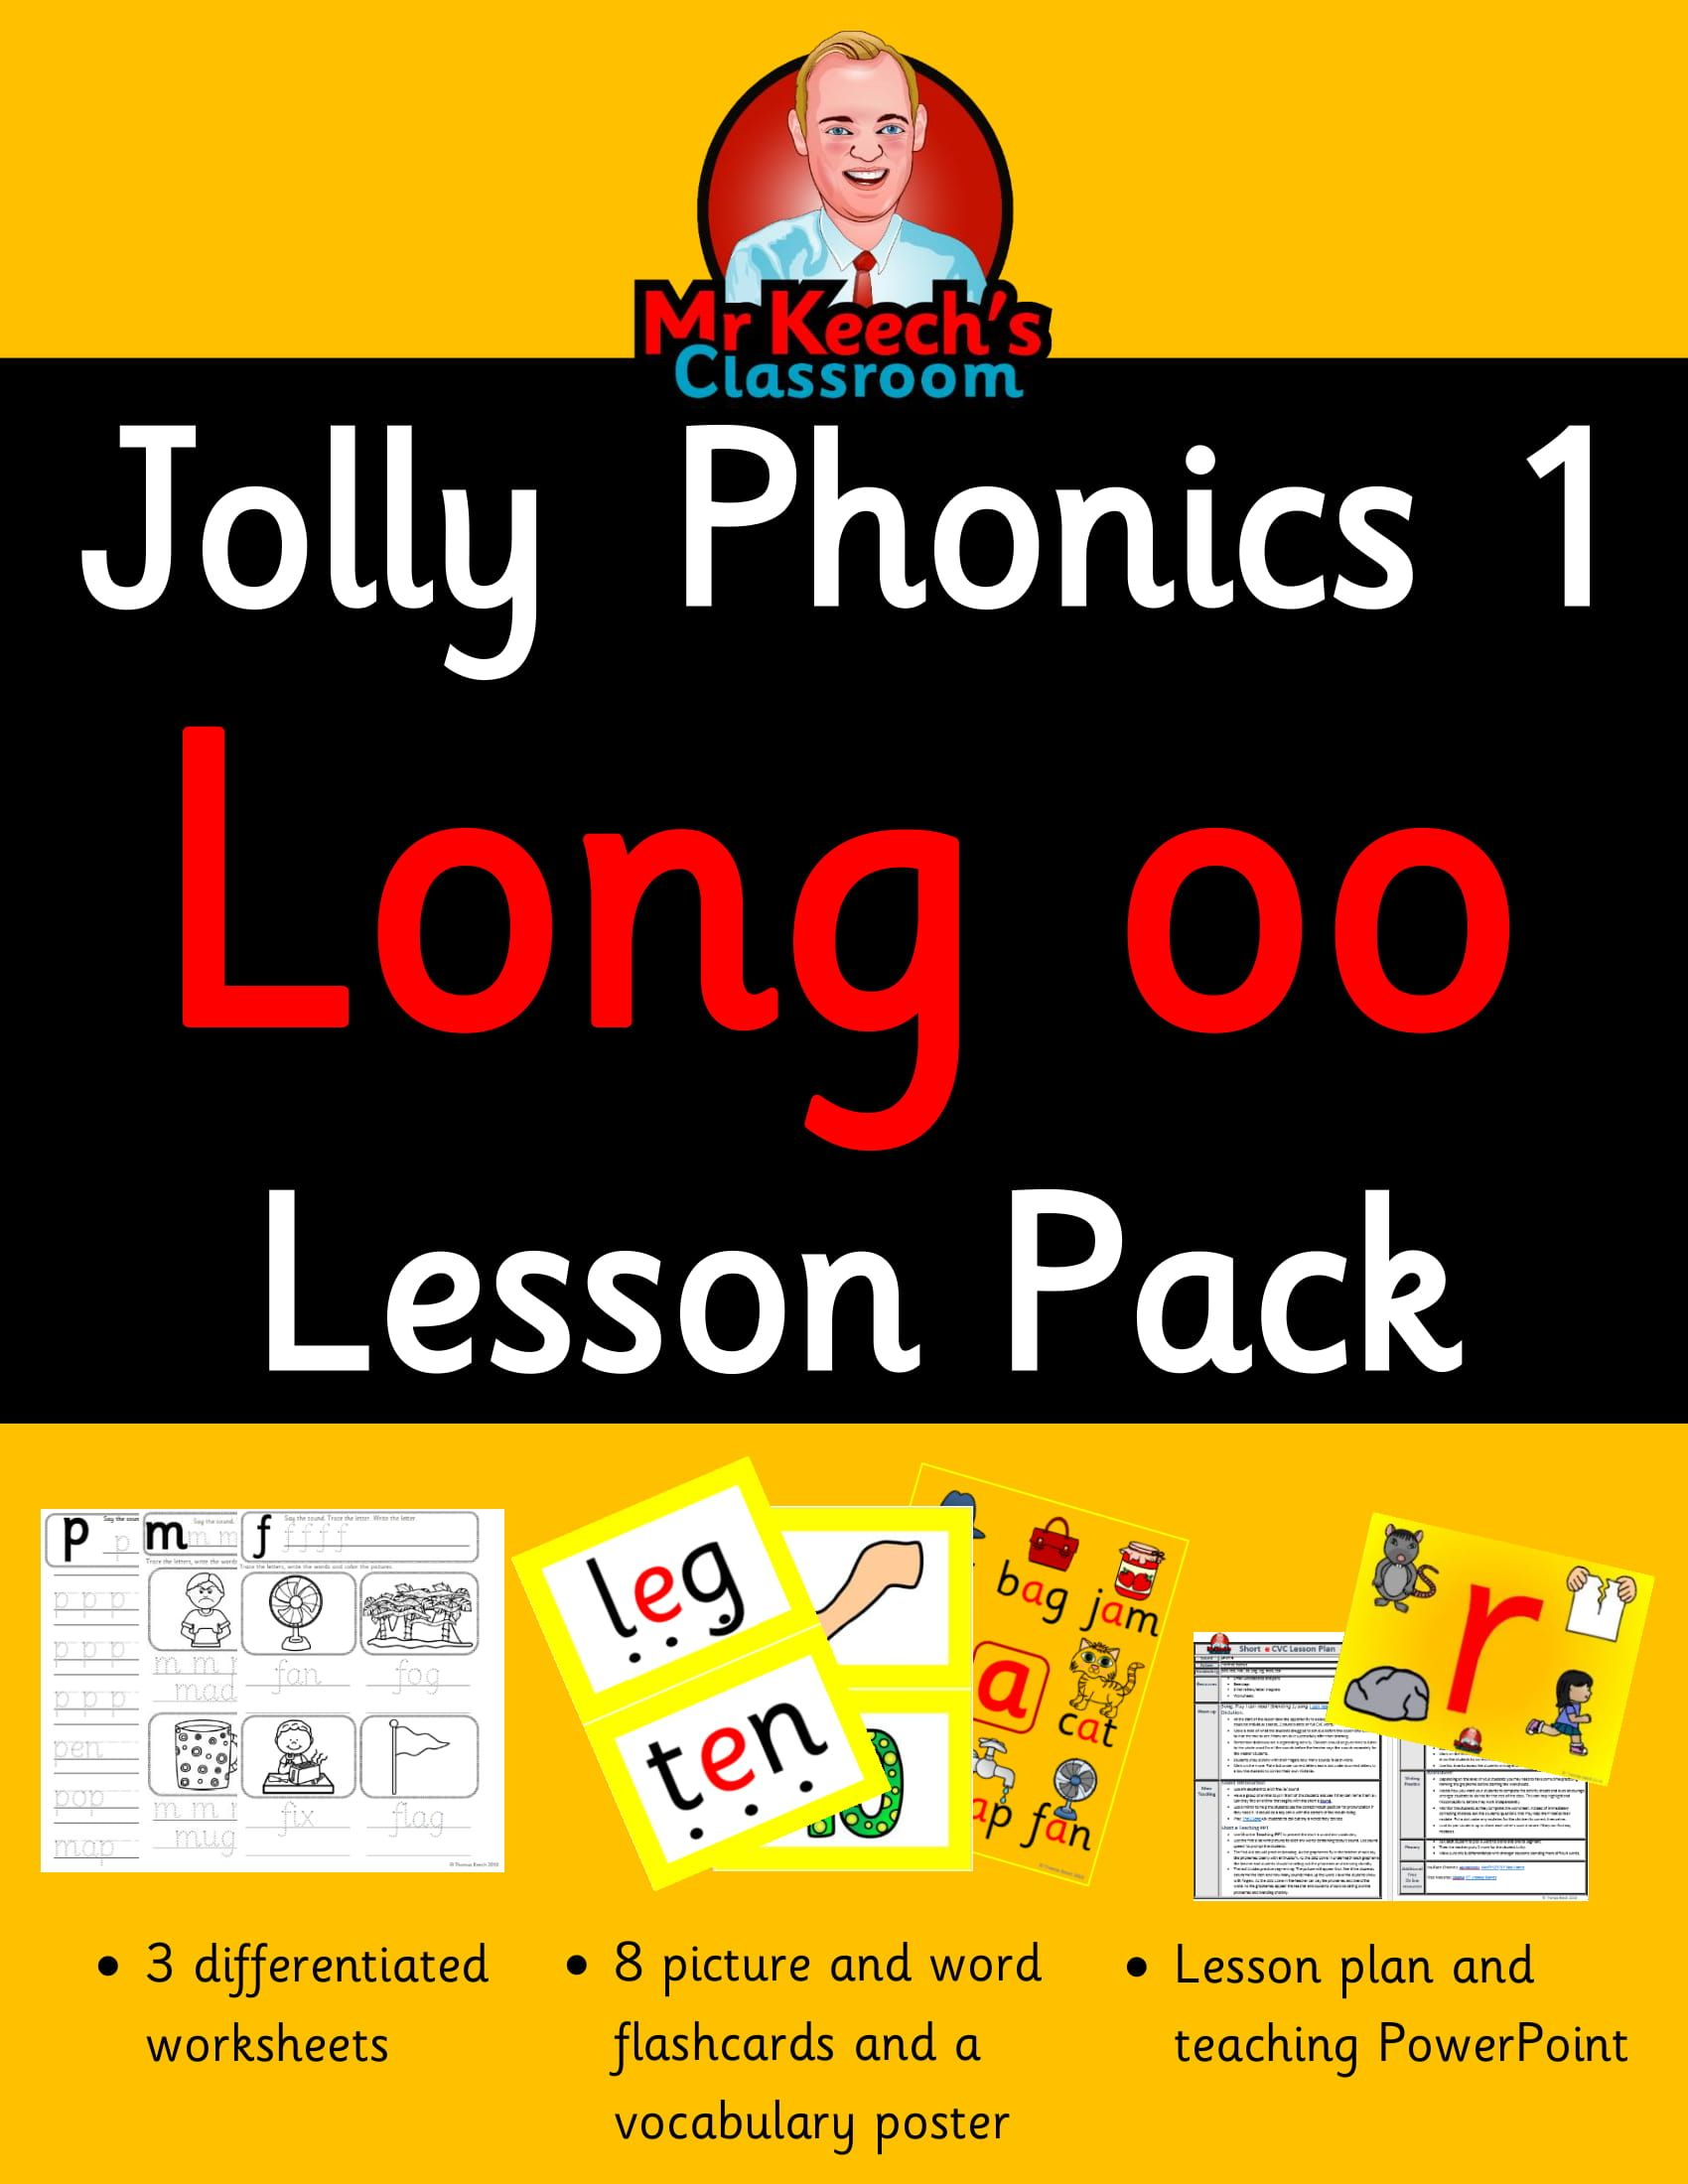 This Long Oo Lesson Pack Contains Everything You Need To